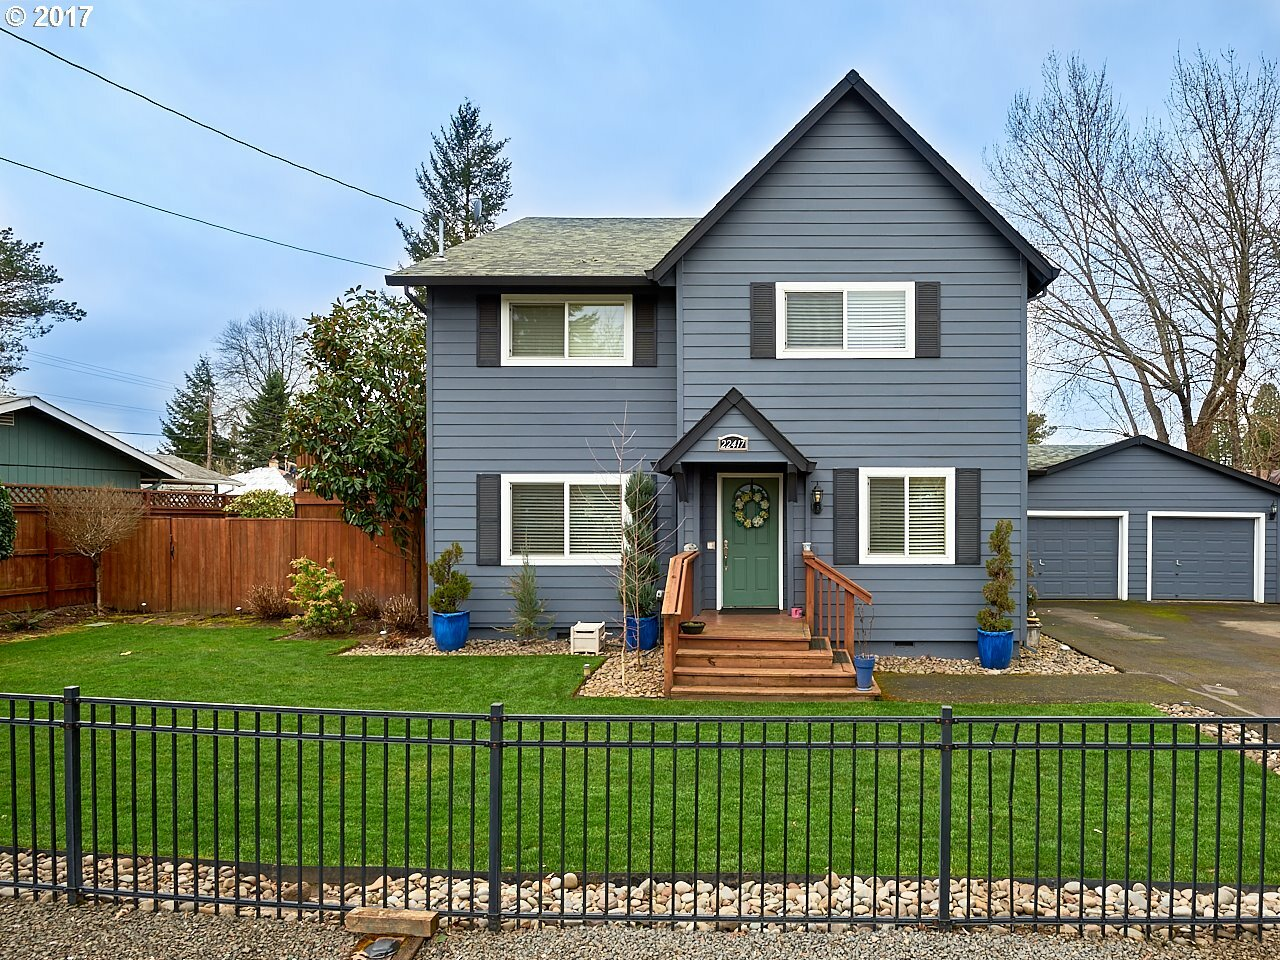 22417 Sw Lincoln St, Sherwood, OR - USA (photo 1)